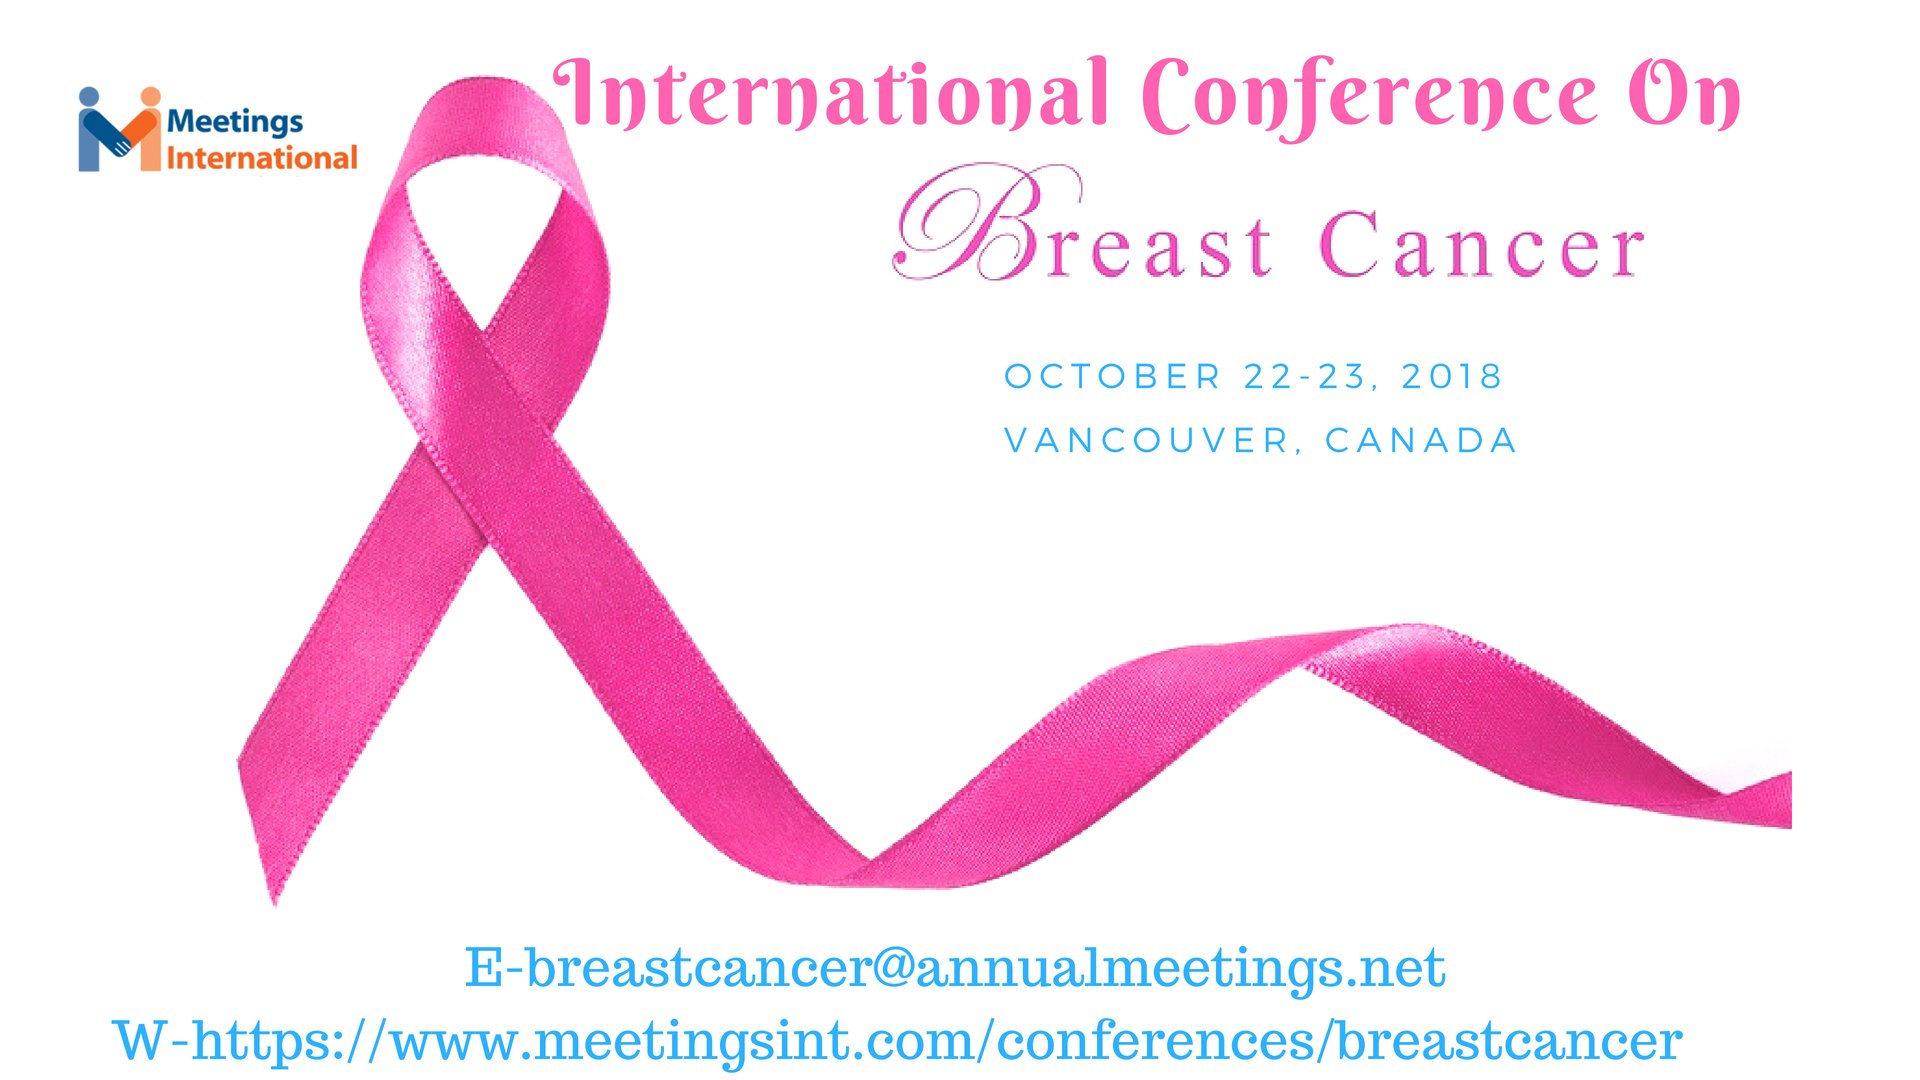 International Conference on Breast Cancer